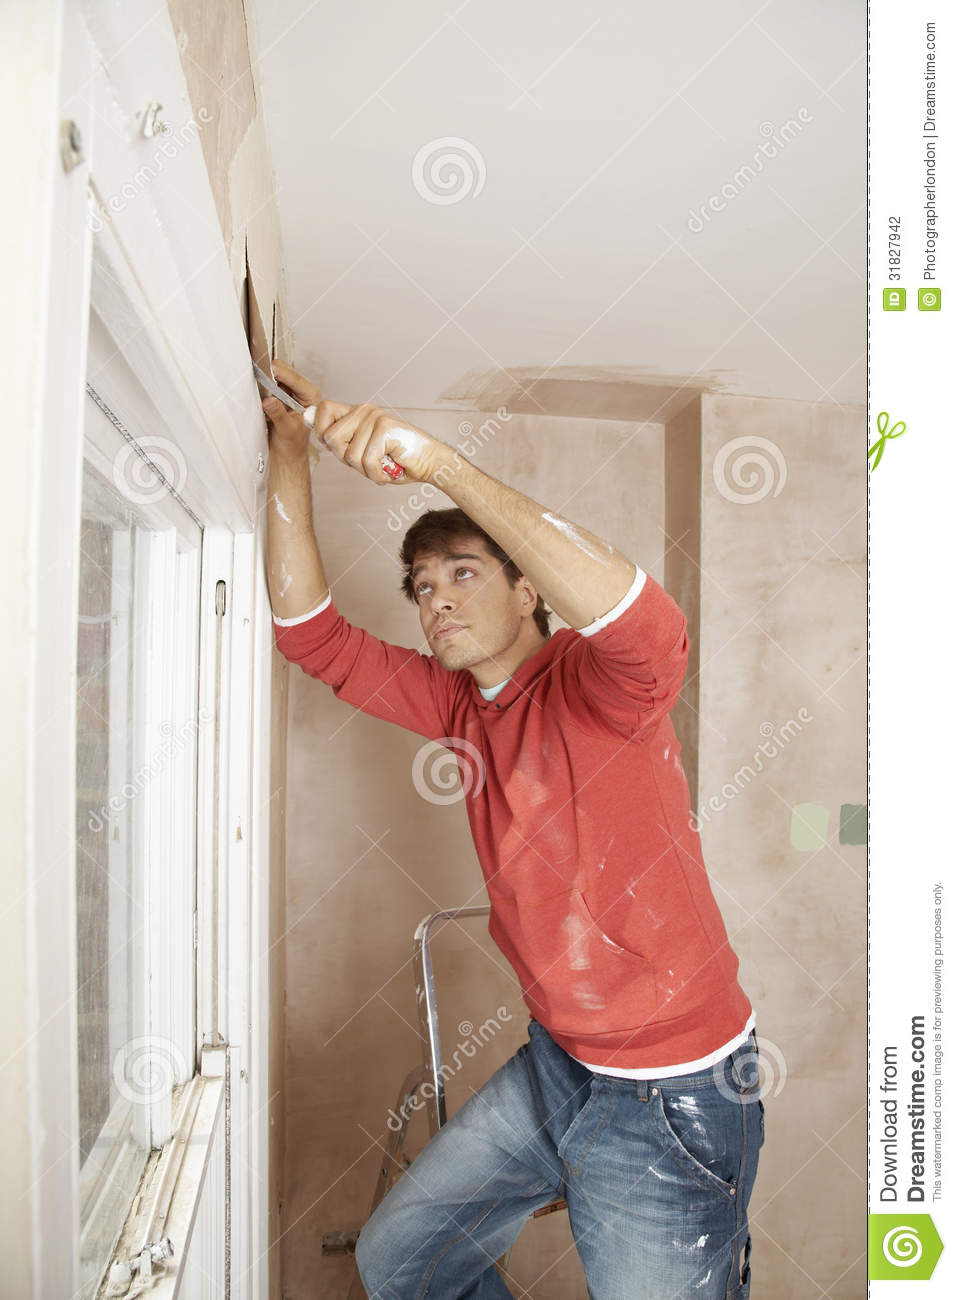 Man Scraping Paint Off Wall Stock Photography Image